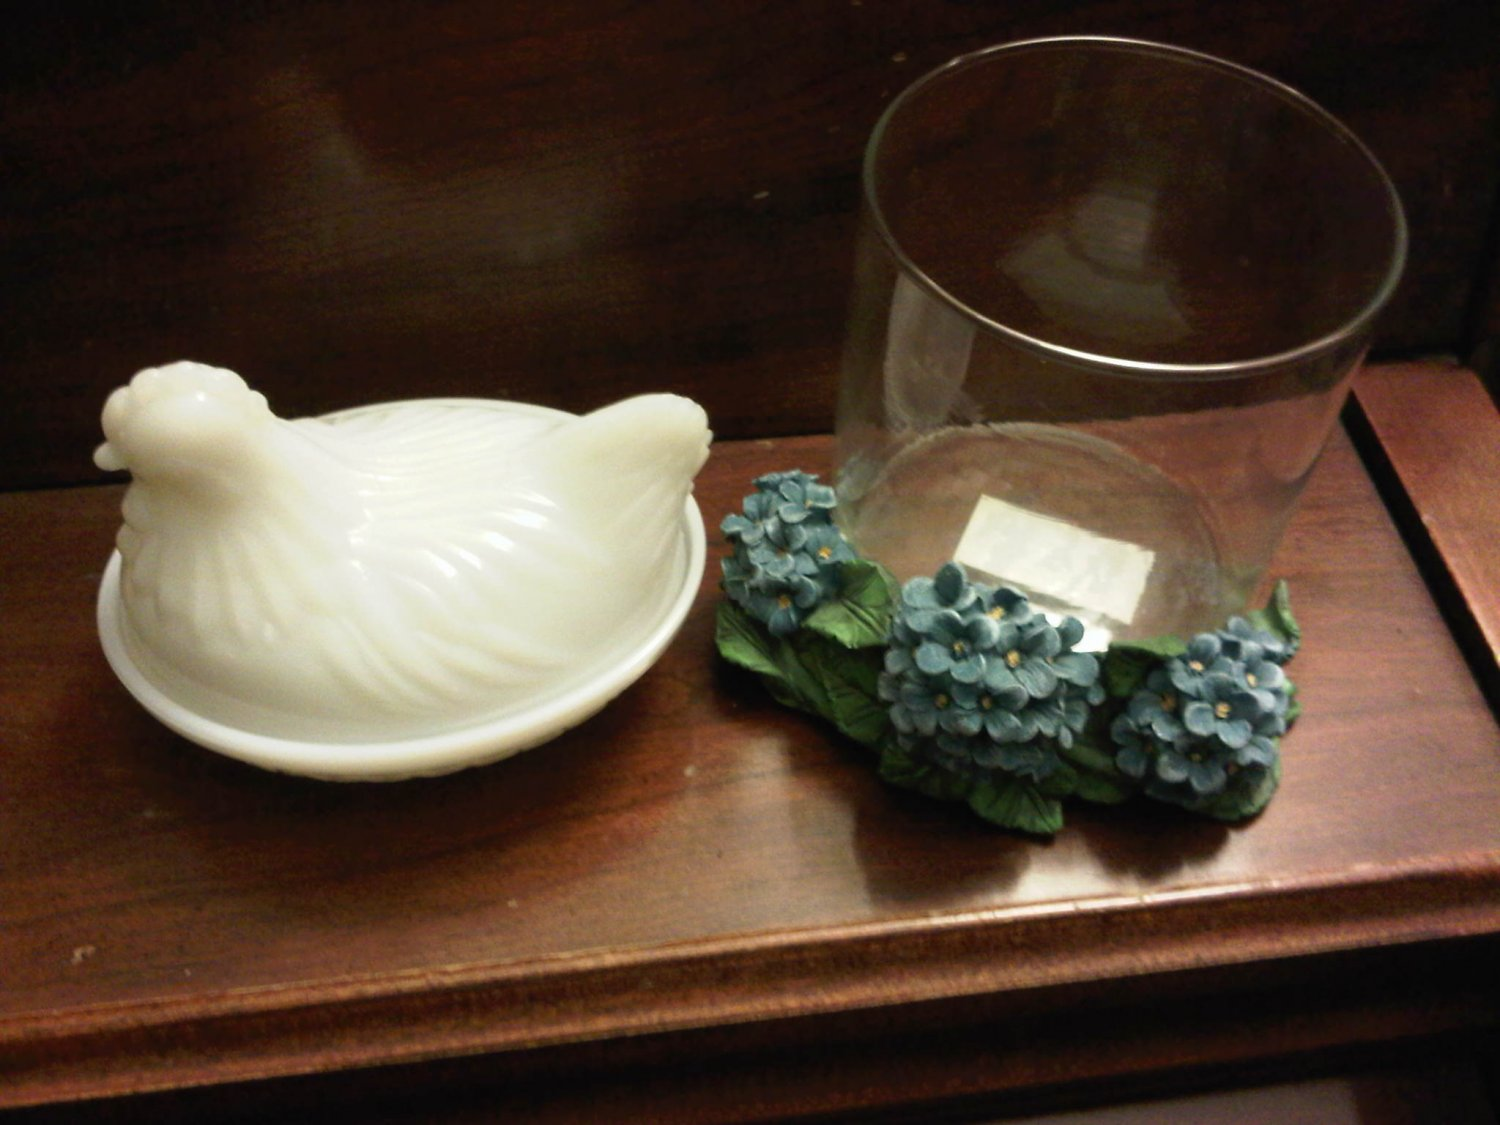 HYDRANGEA BLUE FLOWER CANDLE GLASS CUP HOLDER DECORATIVE COLLECTIBLE FIGURINE HOME